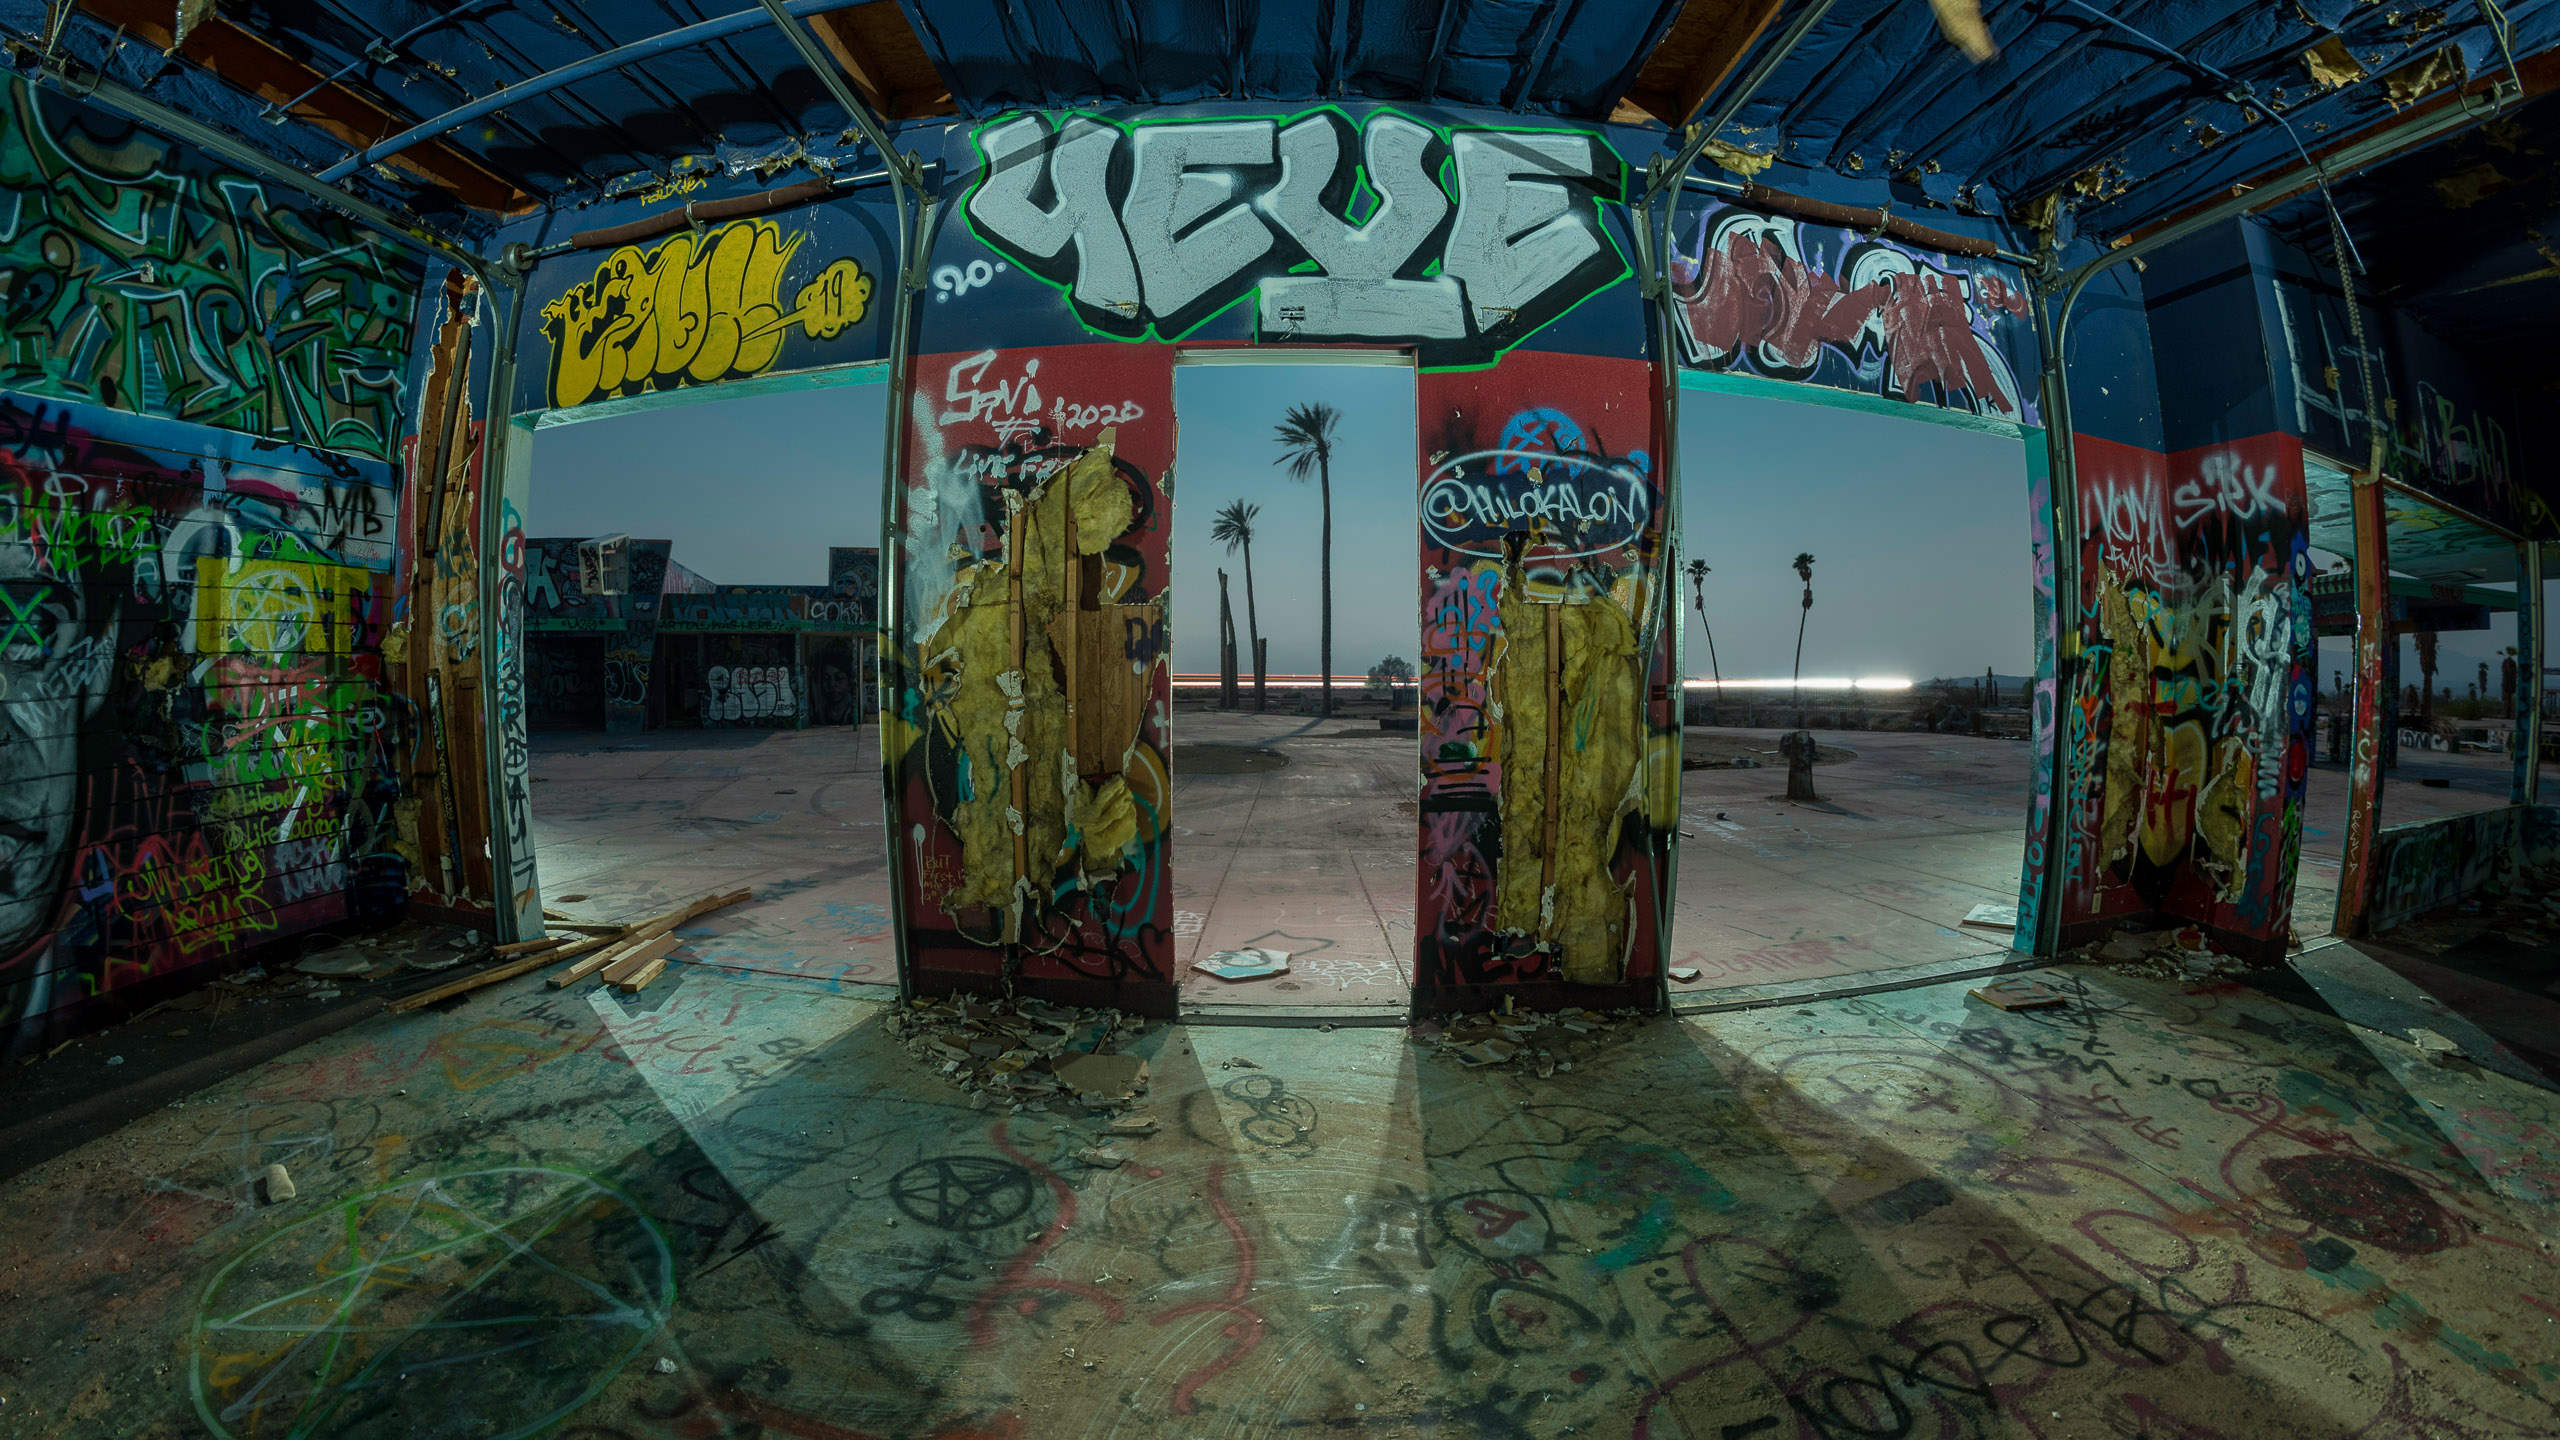 9623_kenlee_lake-dolores-waterpark_210820_0028_220sf8iso200_D750_gift-shop-interior-shadows-2560x1440px-HEADER